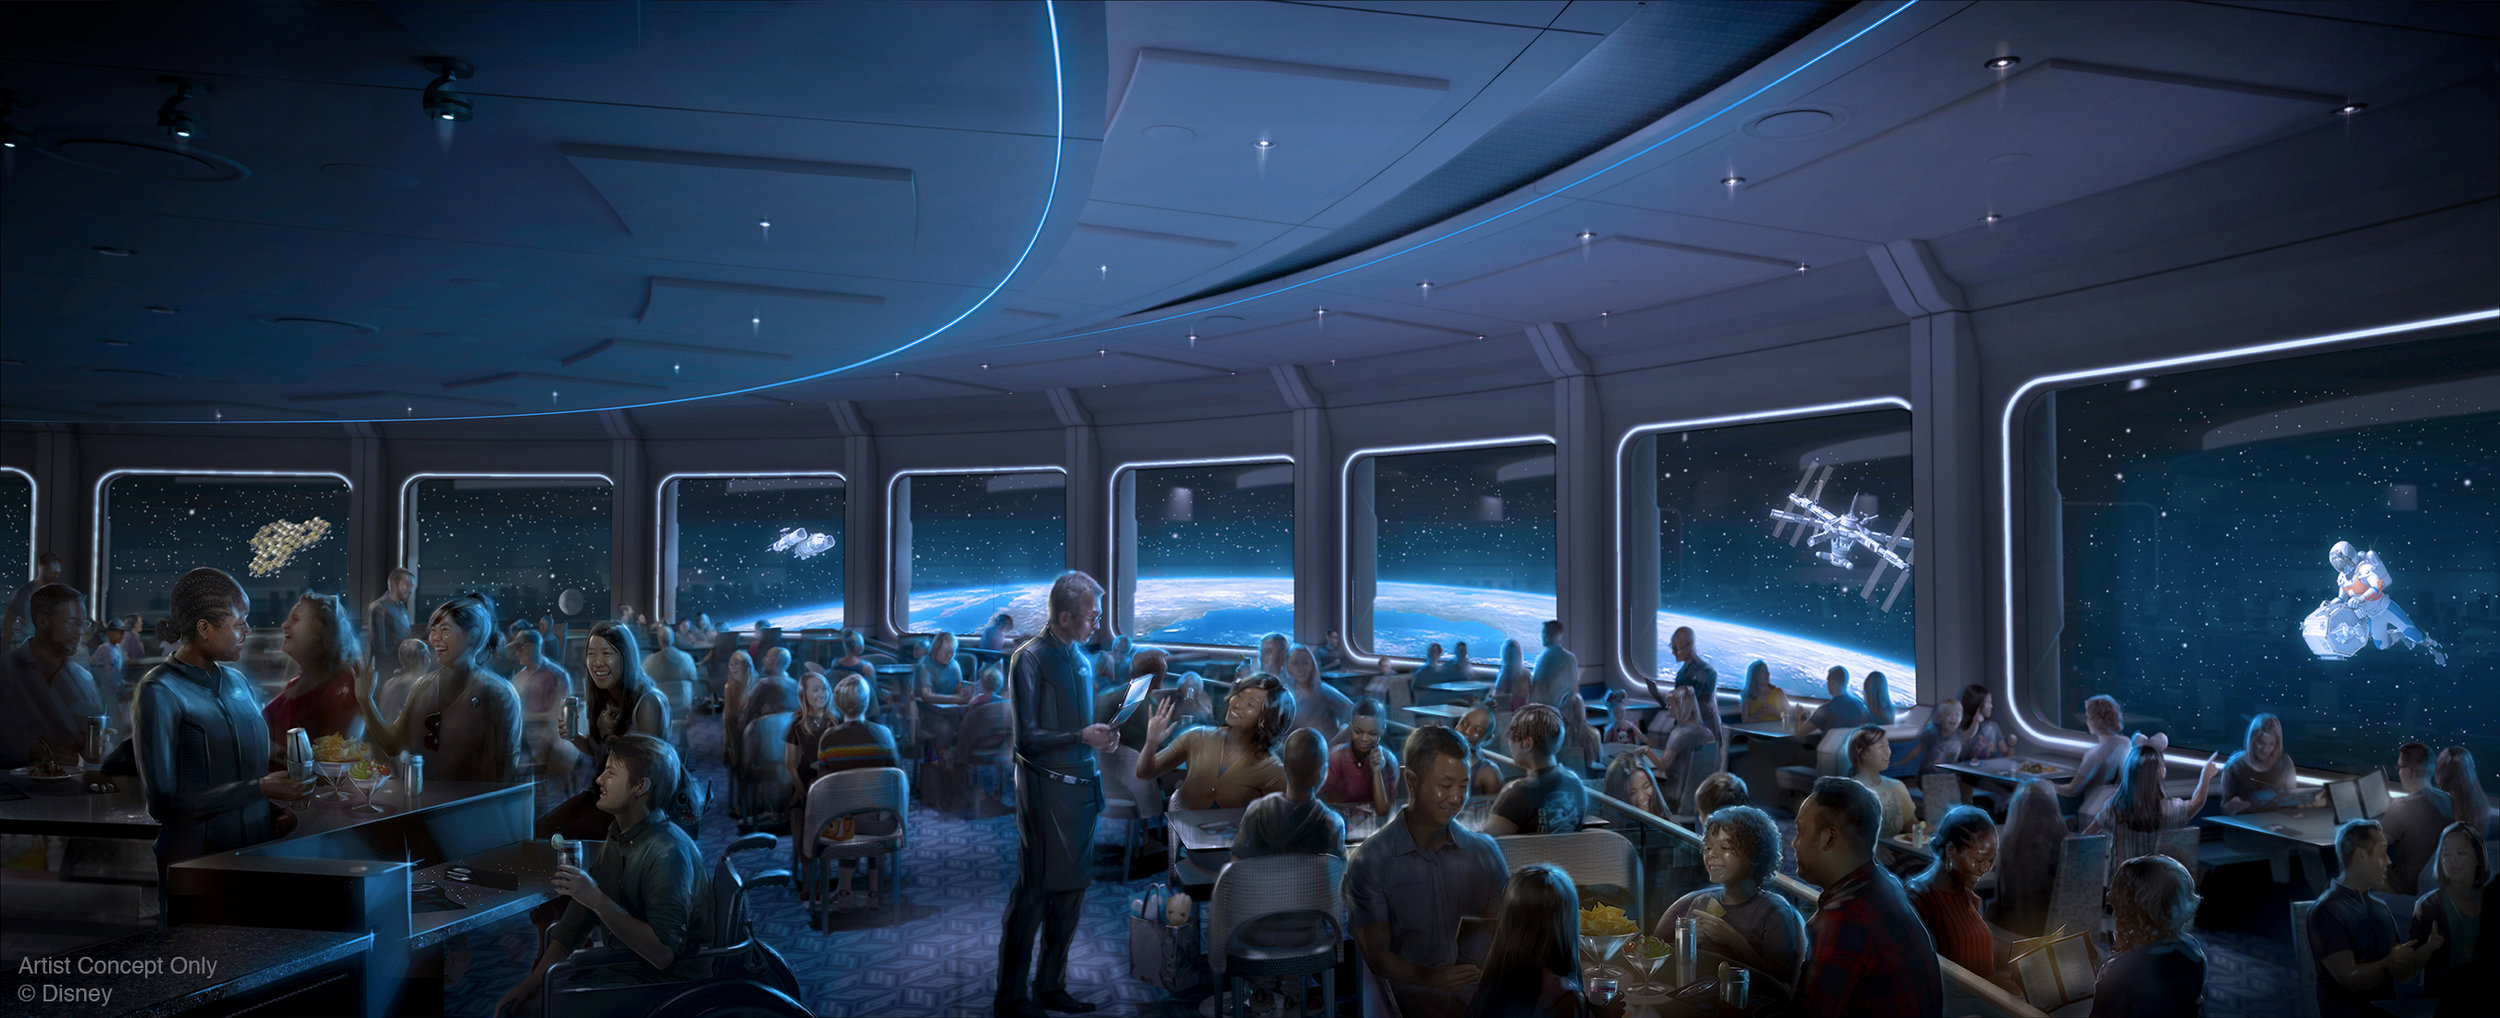 Epcot's Space 220